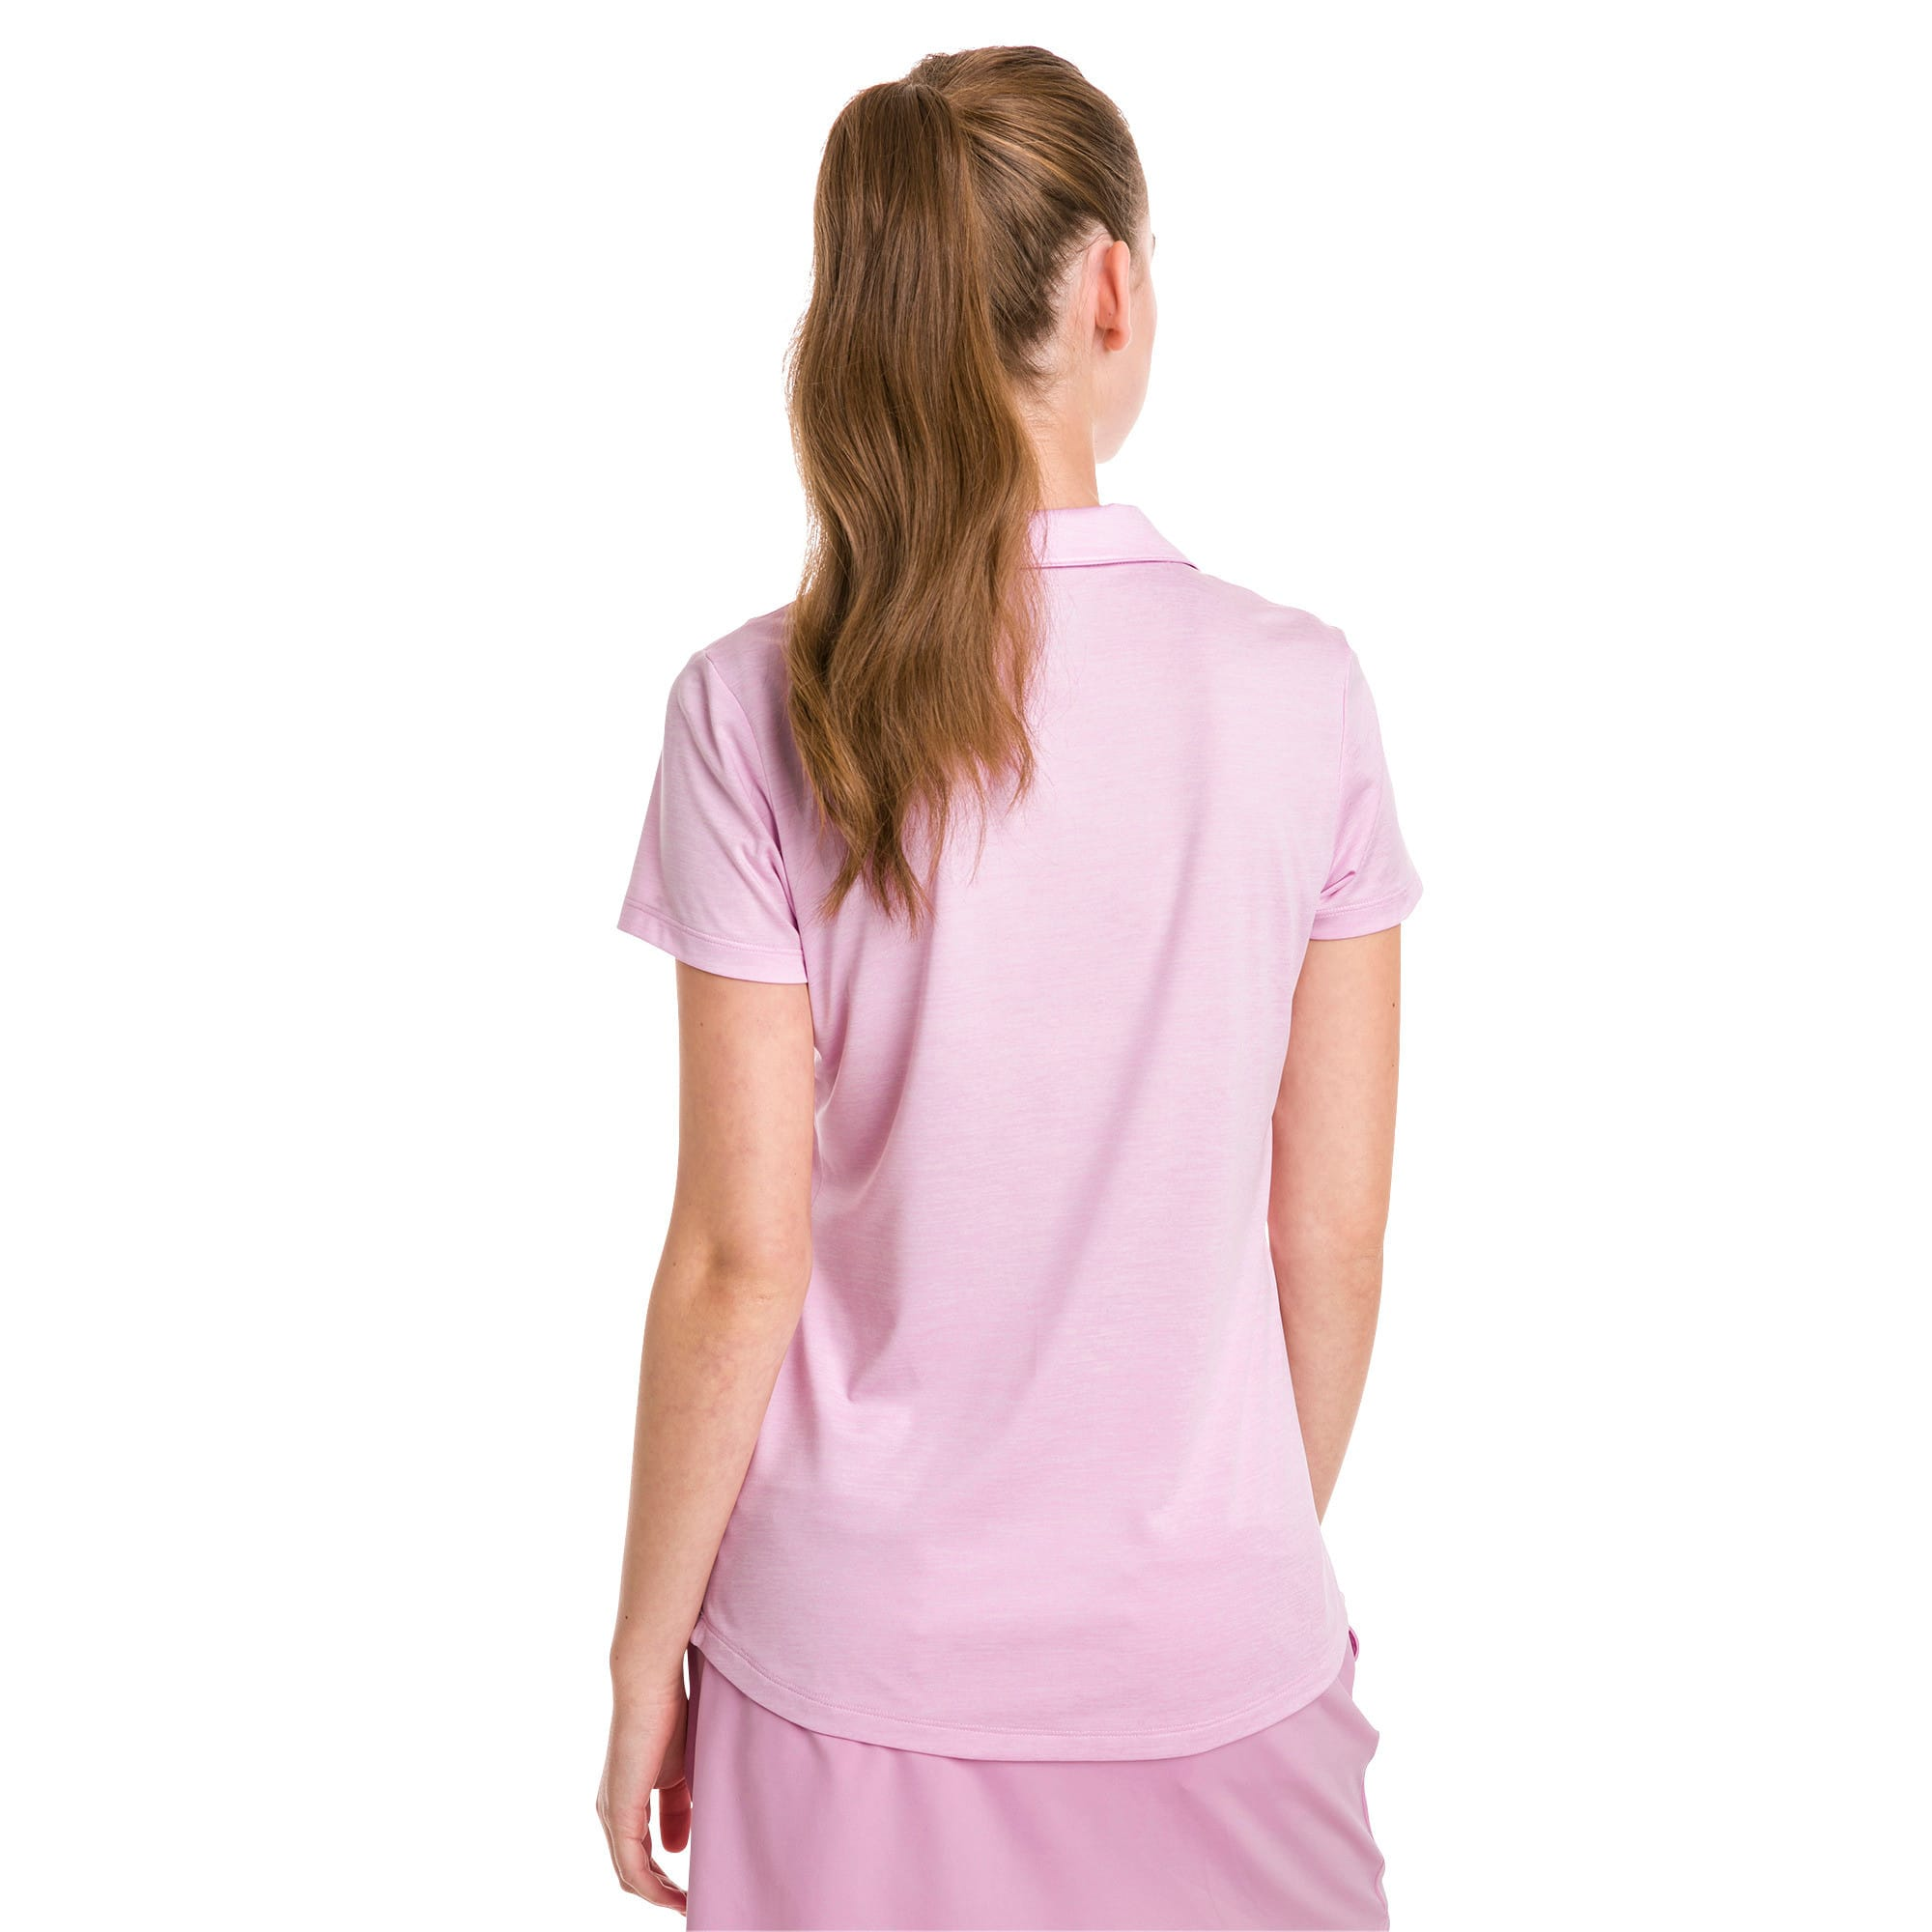 Thumbnail 2 of Super Soft Women's Golf Polo, Pale Pink Heather, medium